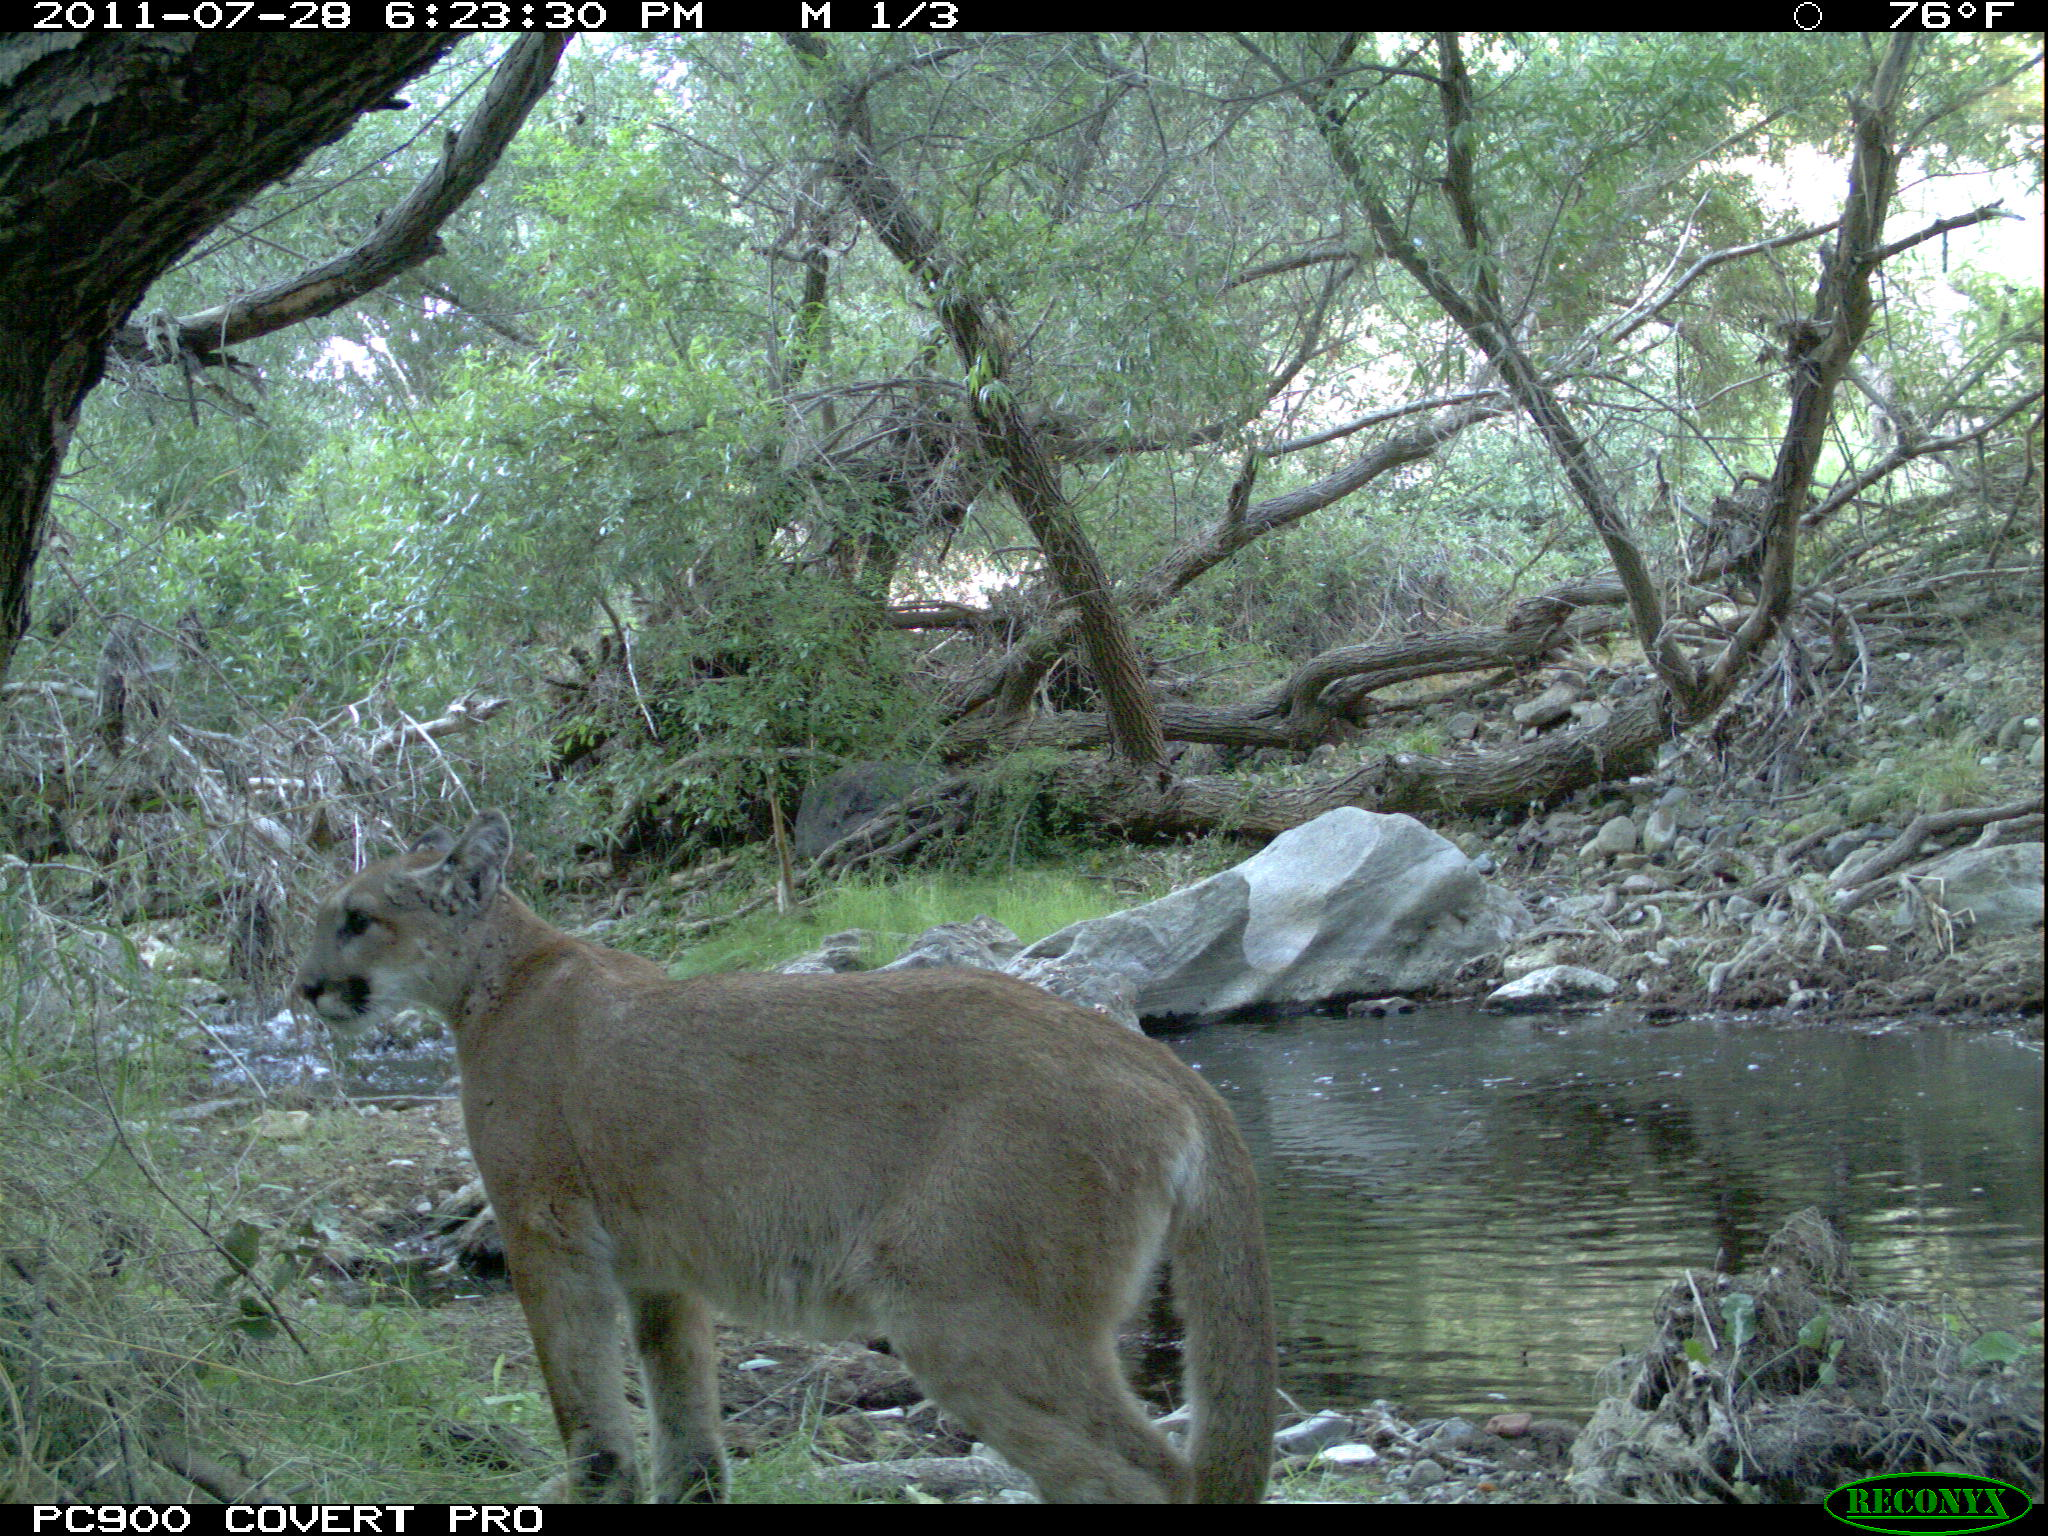 P-18 captured on remote camera shortly after becoming independent from his mother. NPS photo